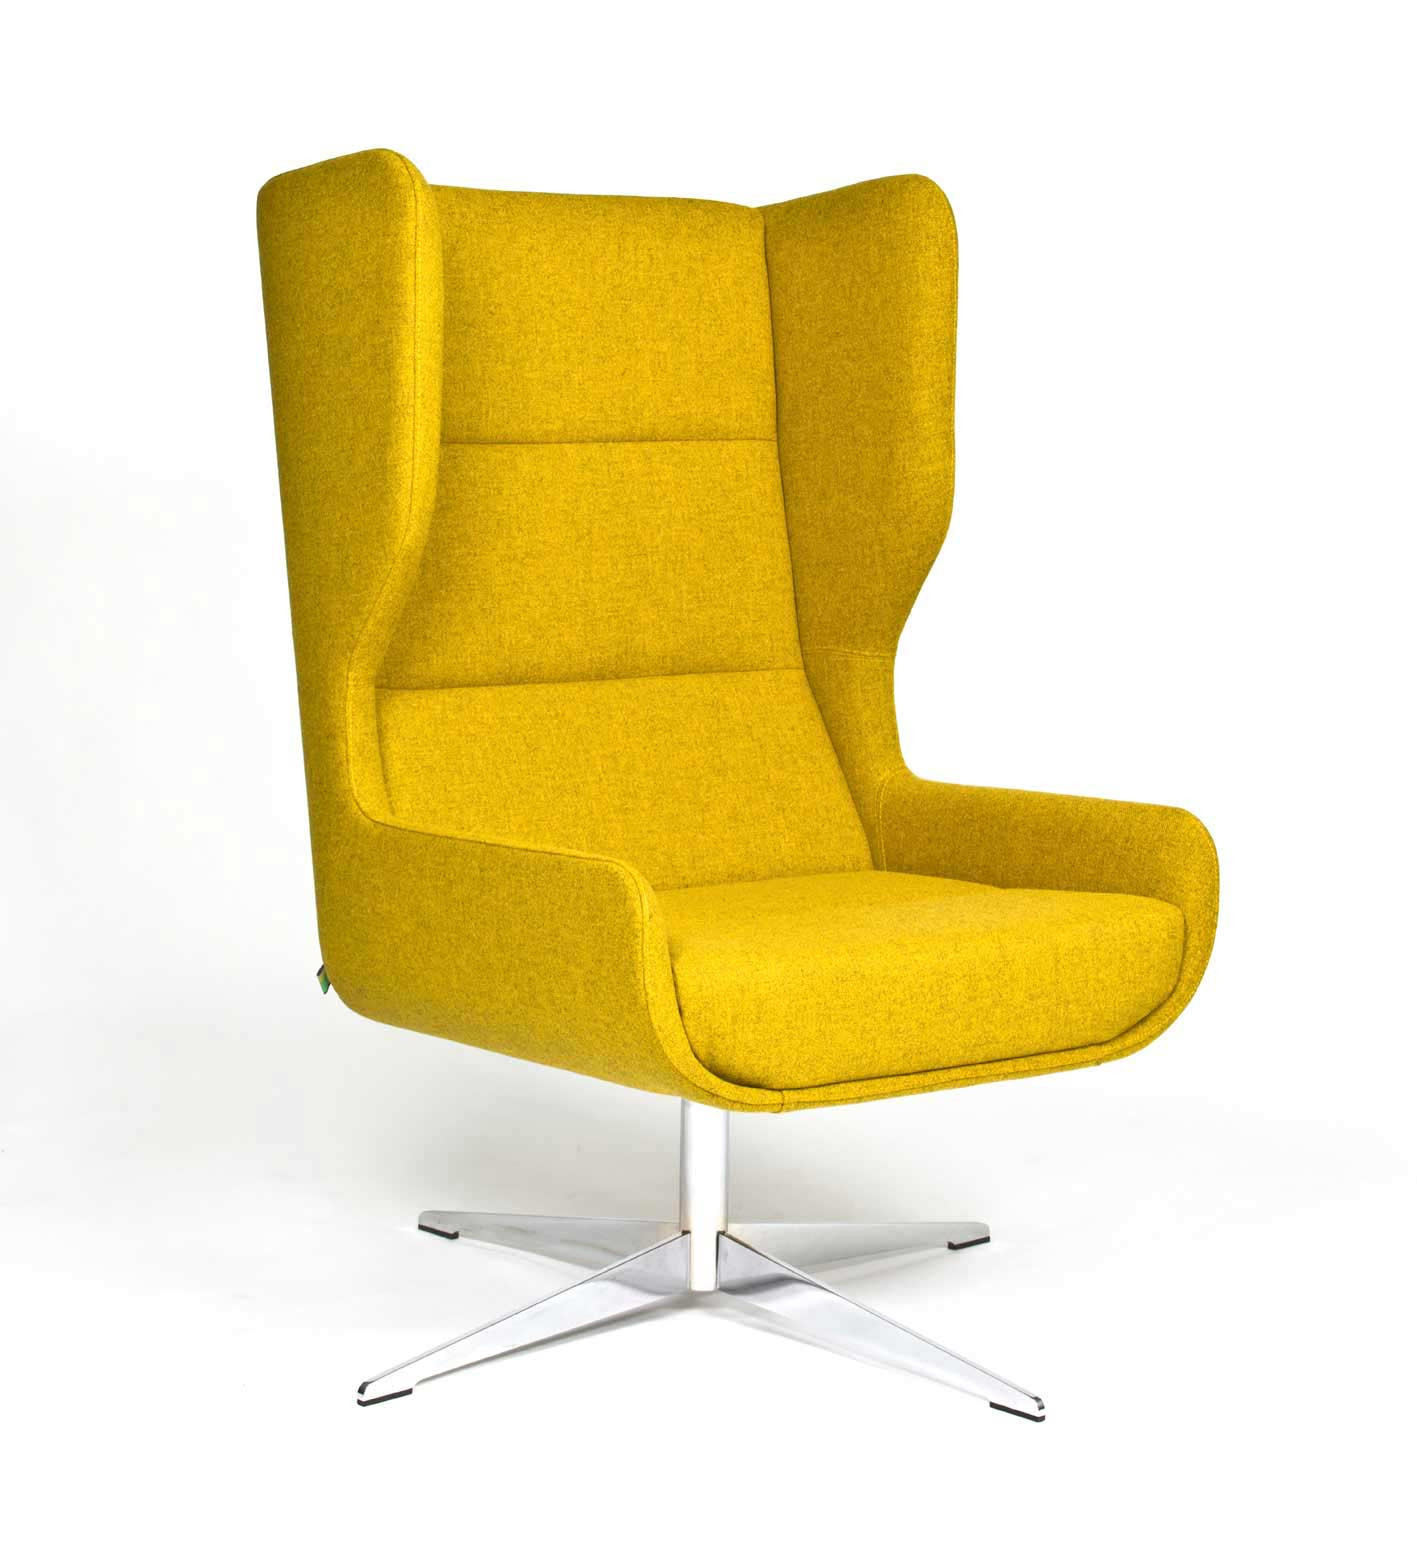 Hush Yellow Divina With Swivel Base Low